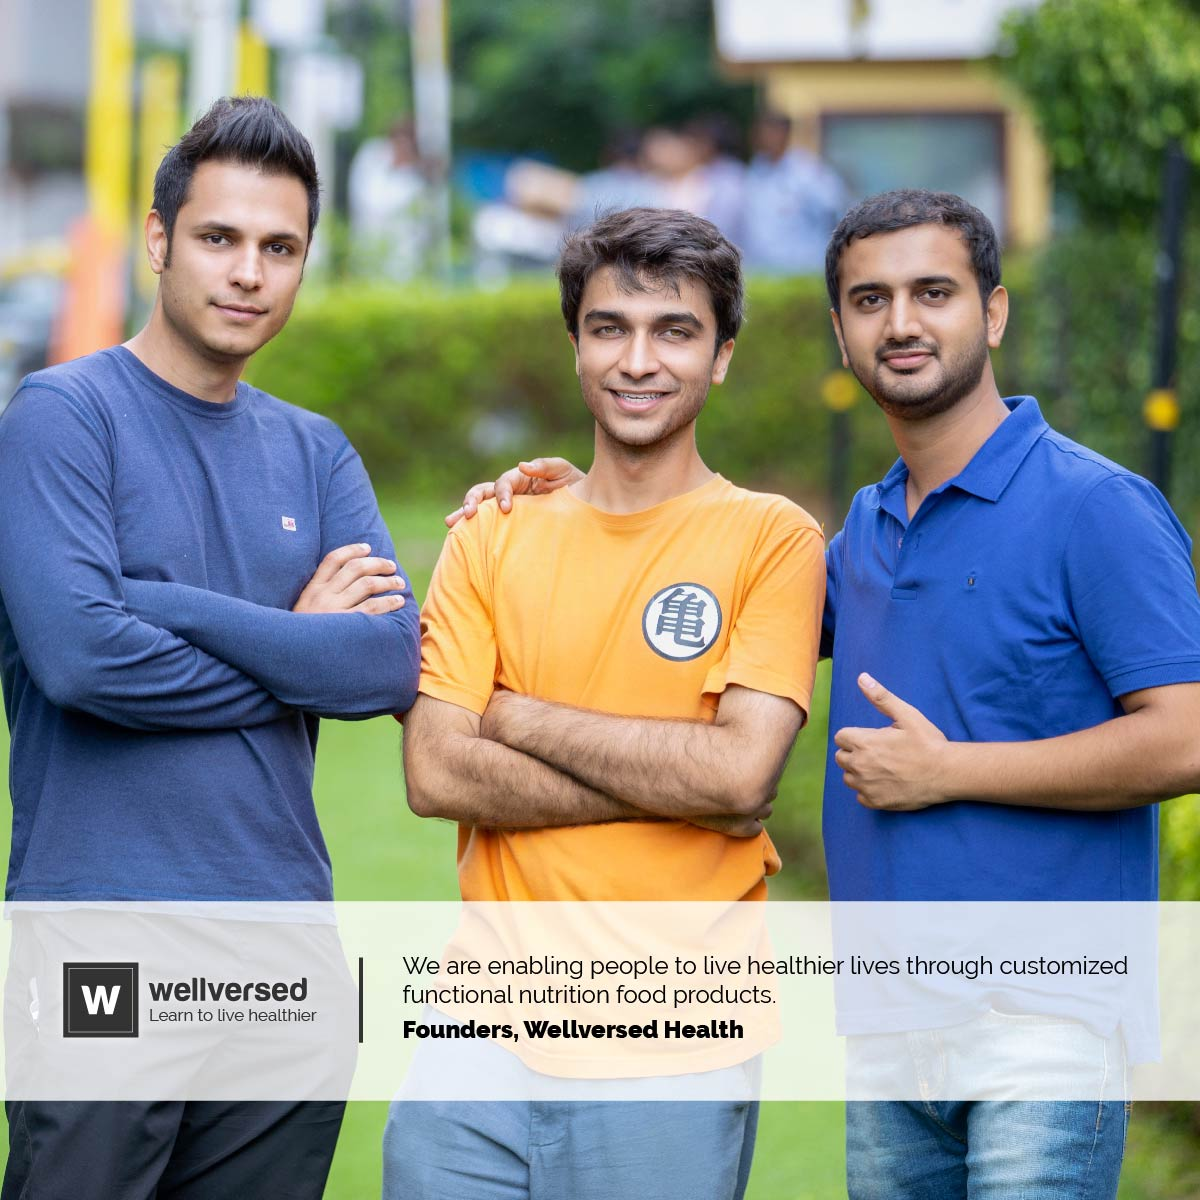 Wellversed Co-founders